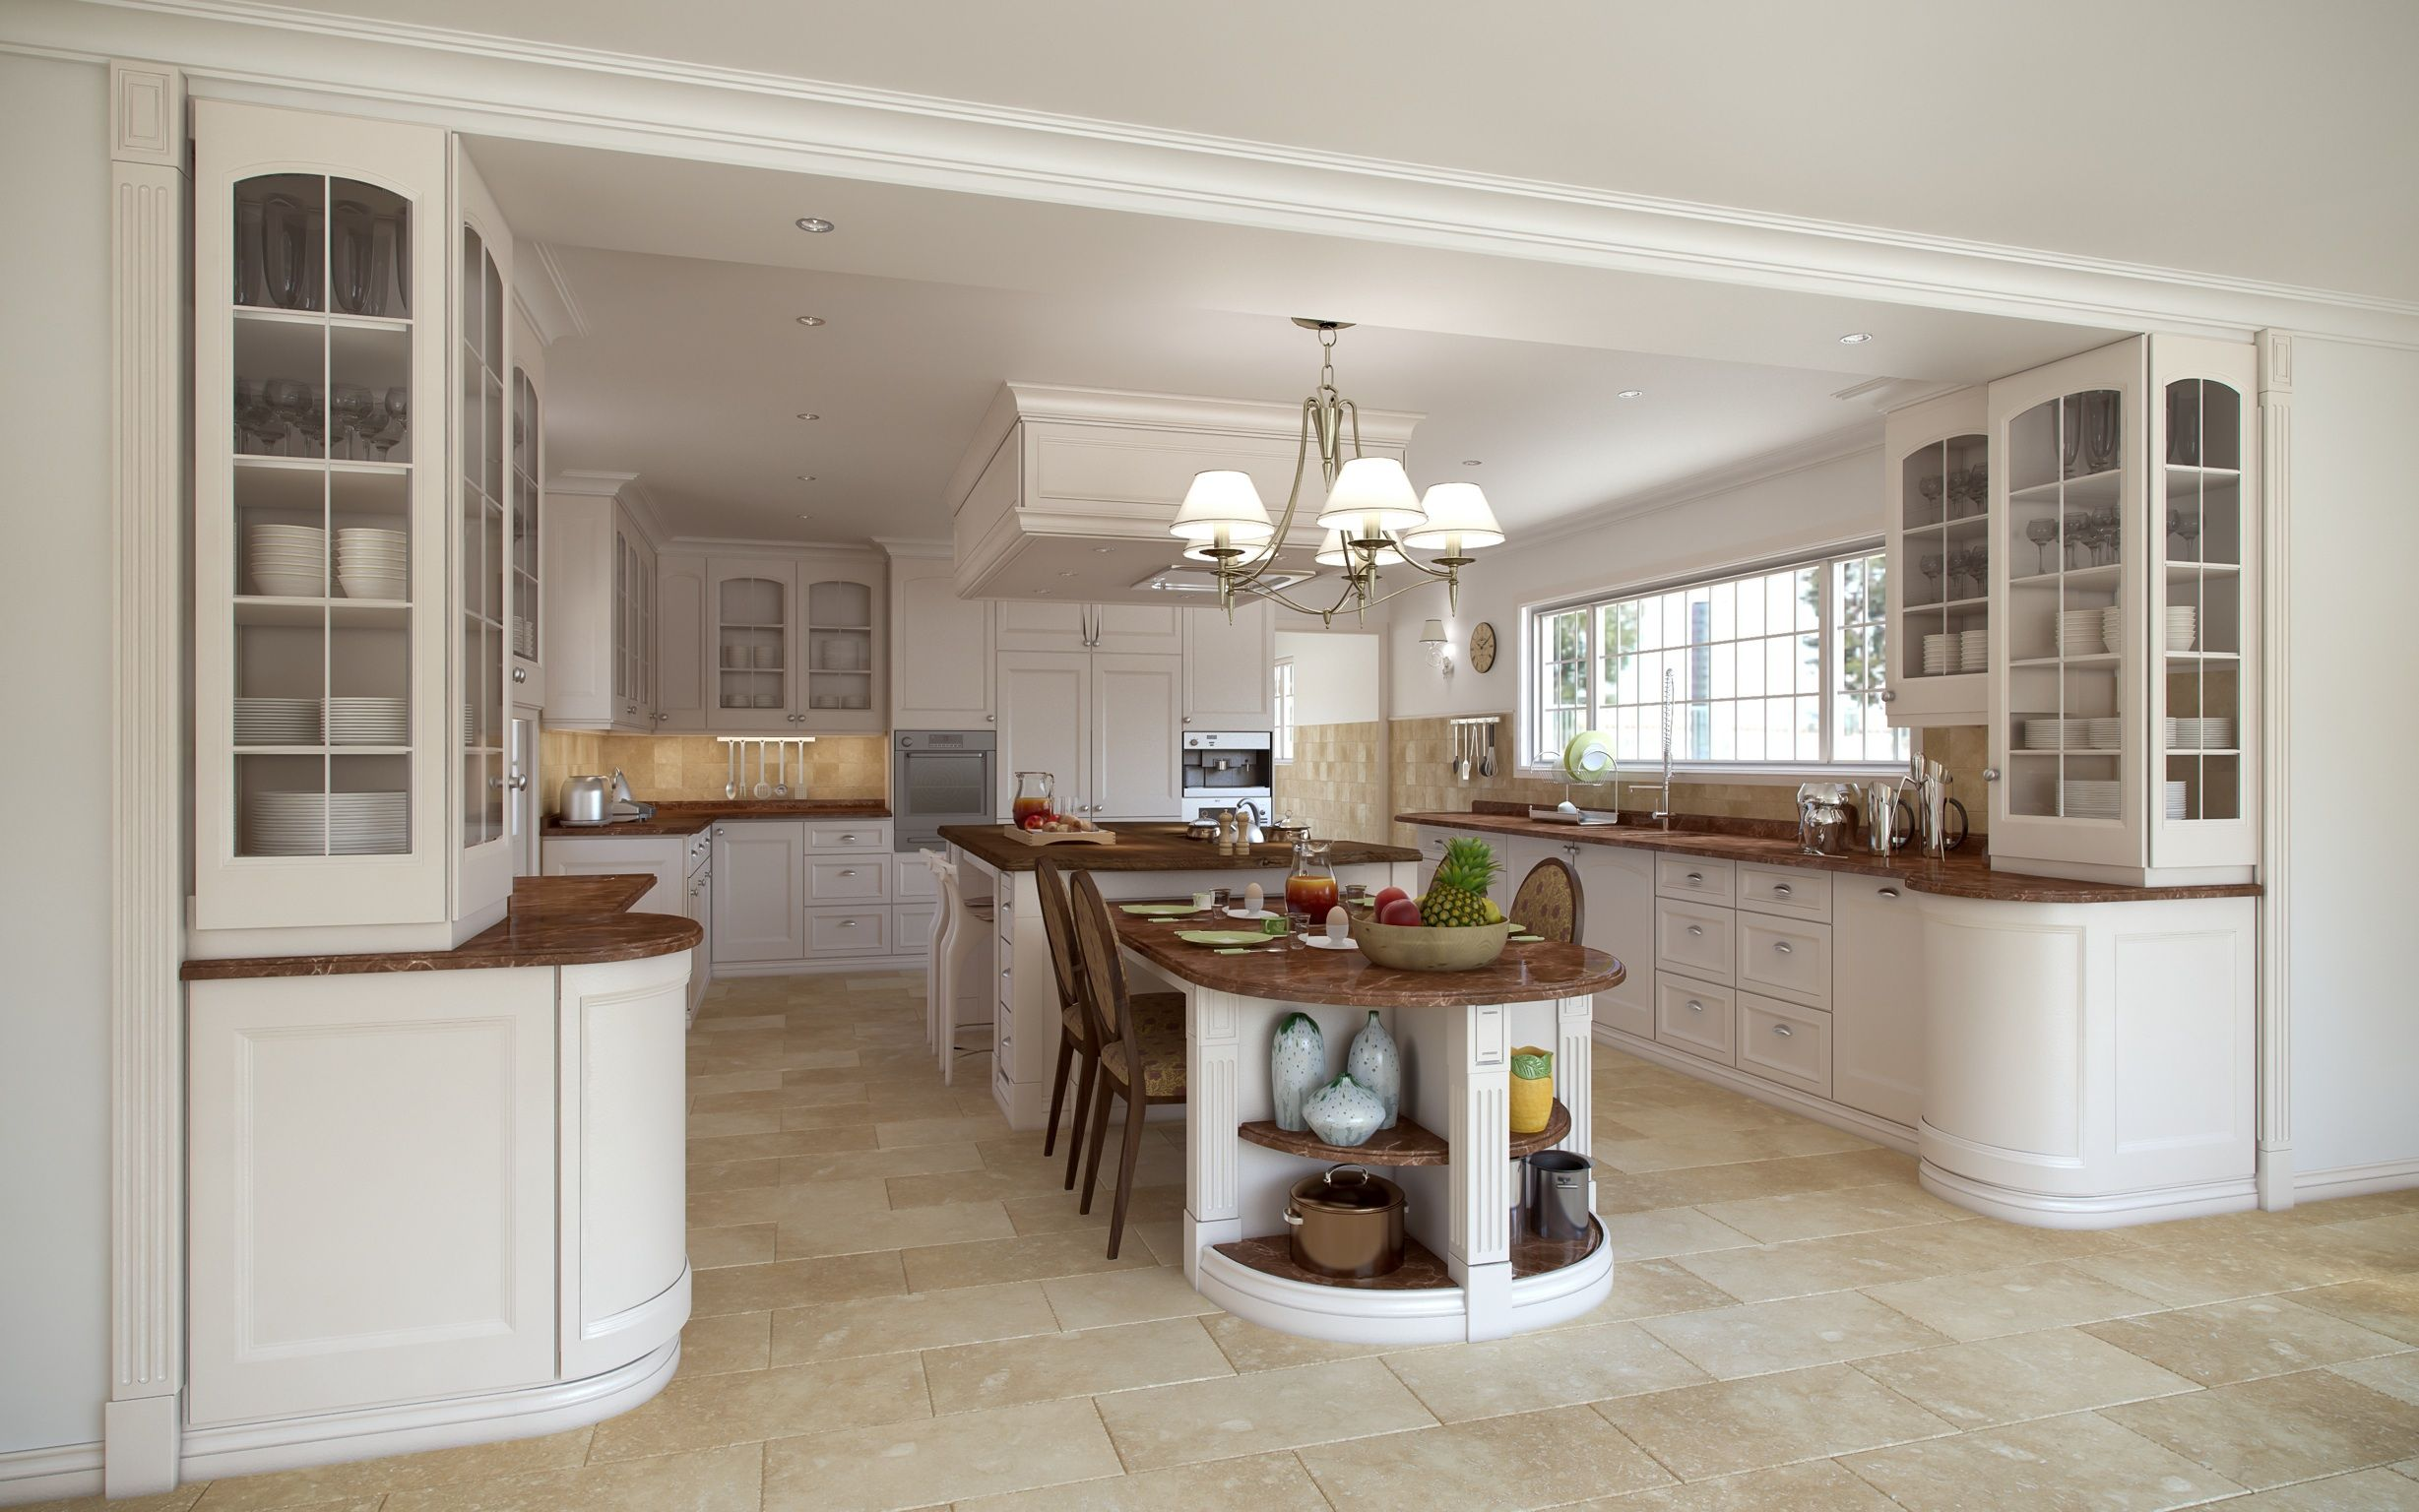 kitchen-traditional-white-kitchen-areas-with-white-cabinets